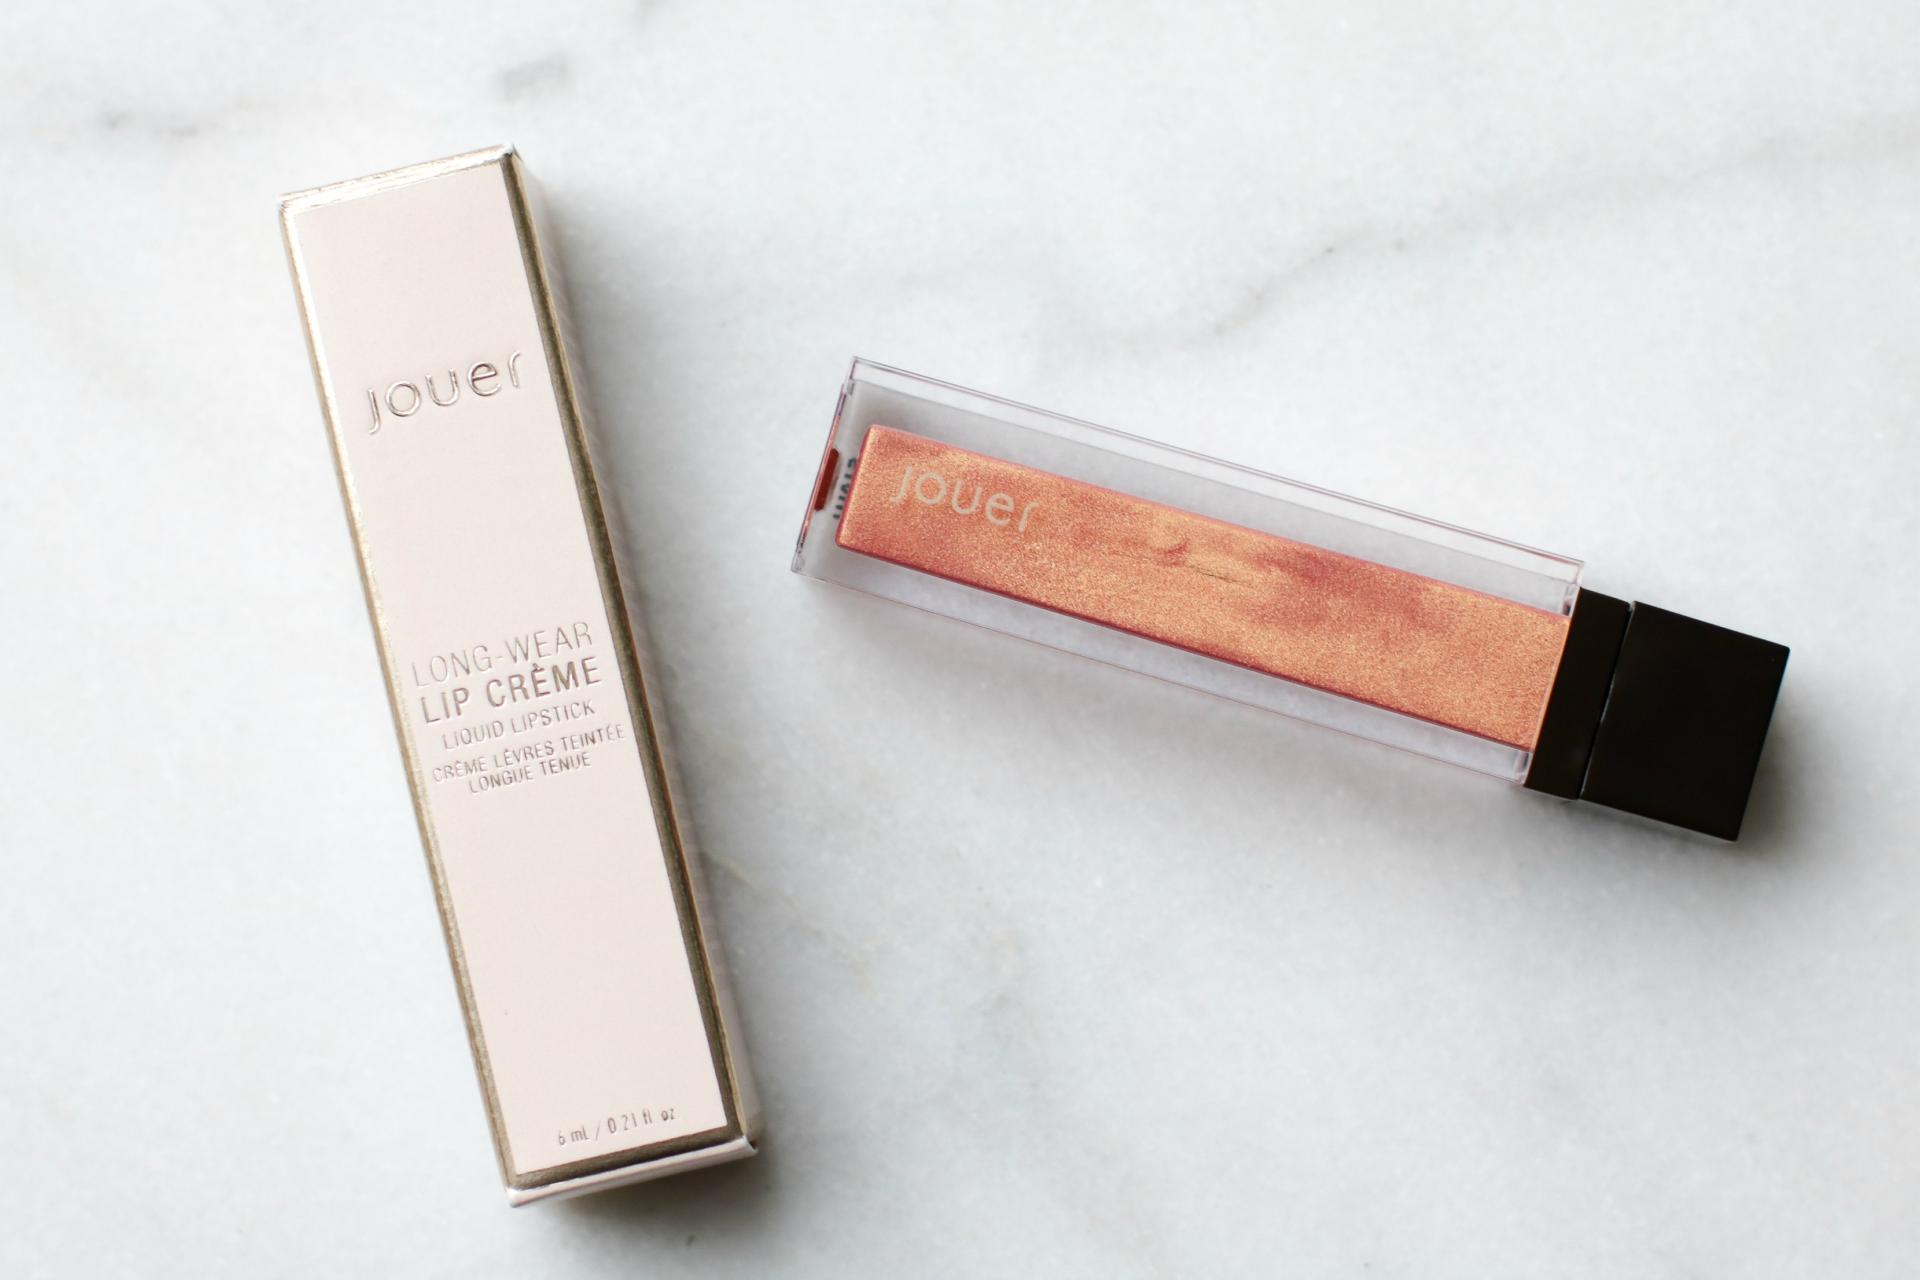 Jouer Papaye Long-Wear Lip Crème Liquid Lipstick